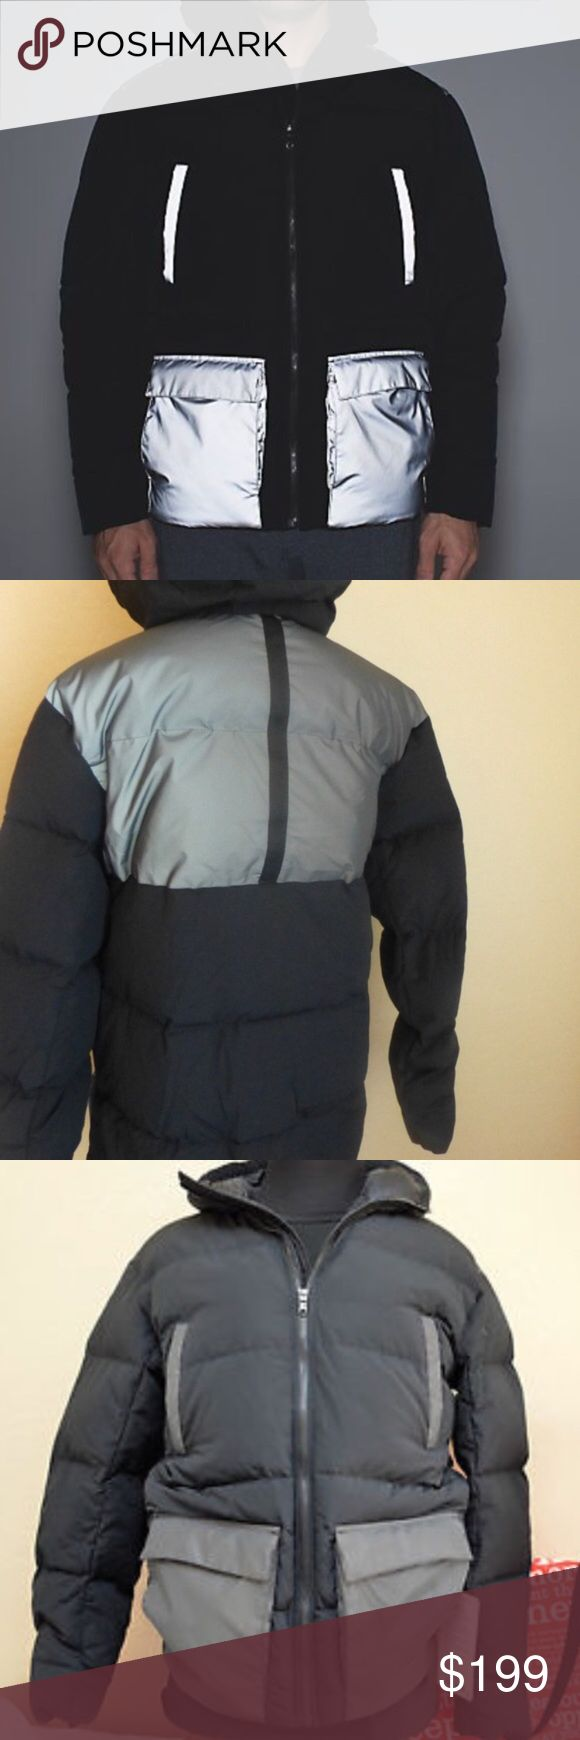 New w/tags  Lululemon Men's down coat. Macleod New w/tags  Lululemon Men's down coat. Macleod Parka lululemon athletica Jackets & Coats